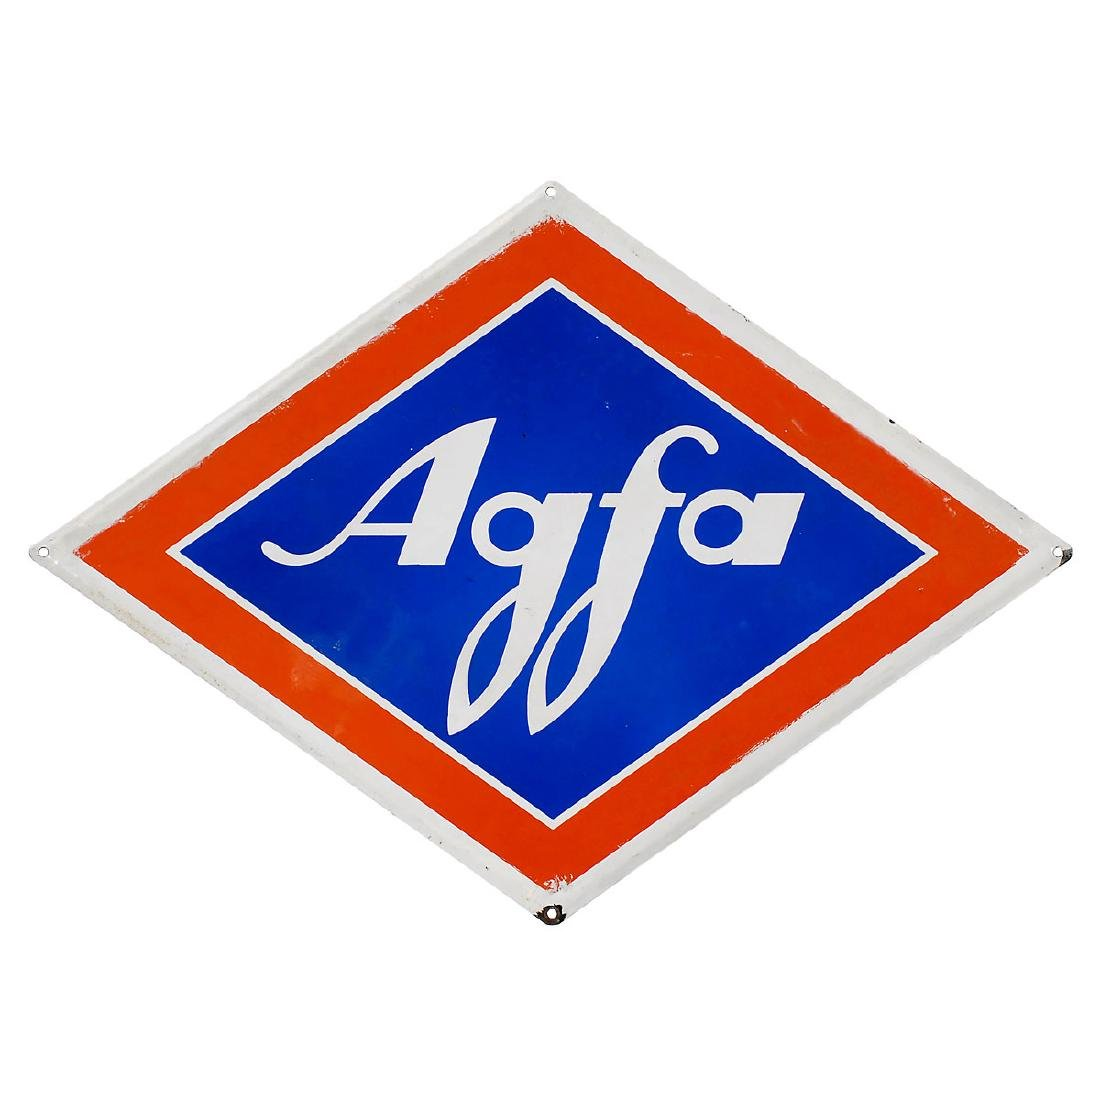 "Diamond-Shaped ""Agfa"" Enamel Advertising Sign, c. 1950"